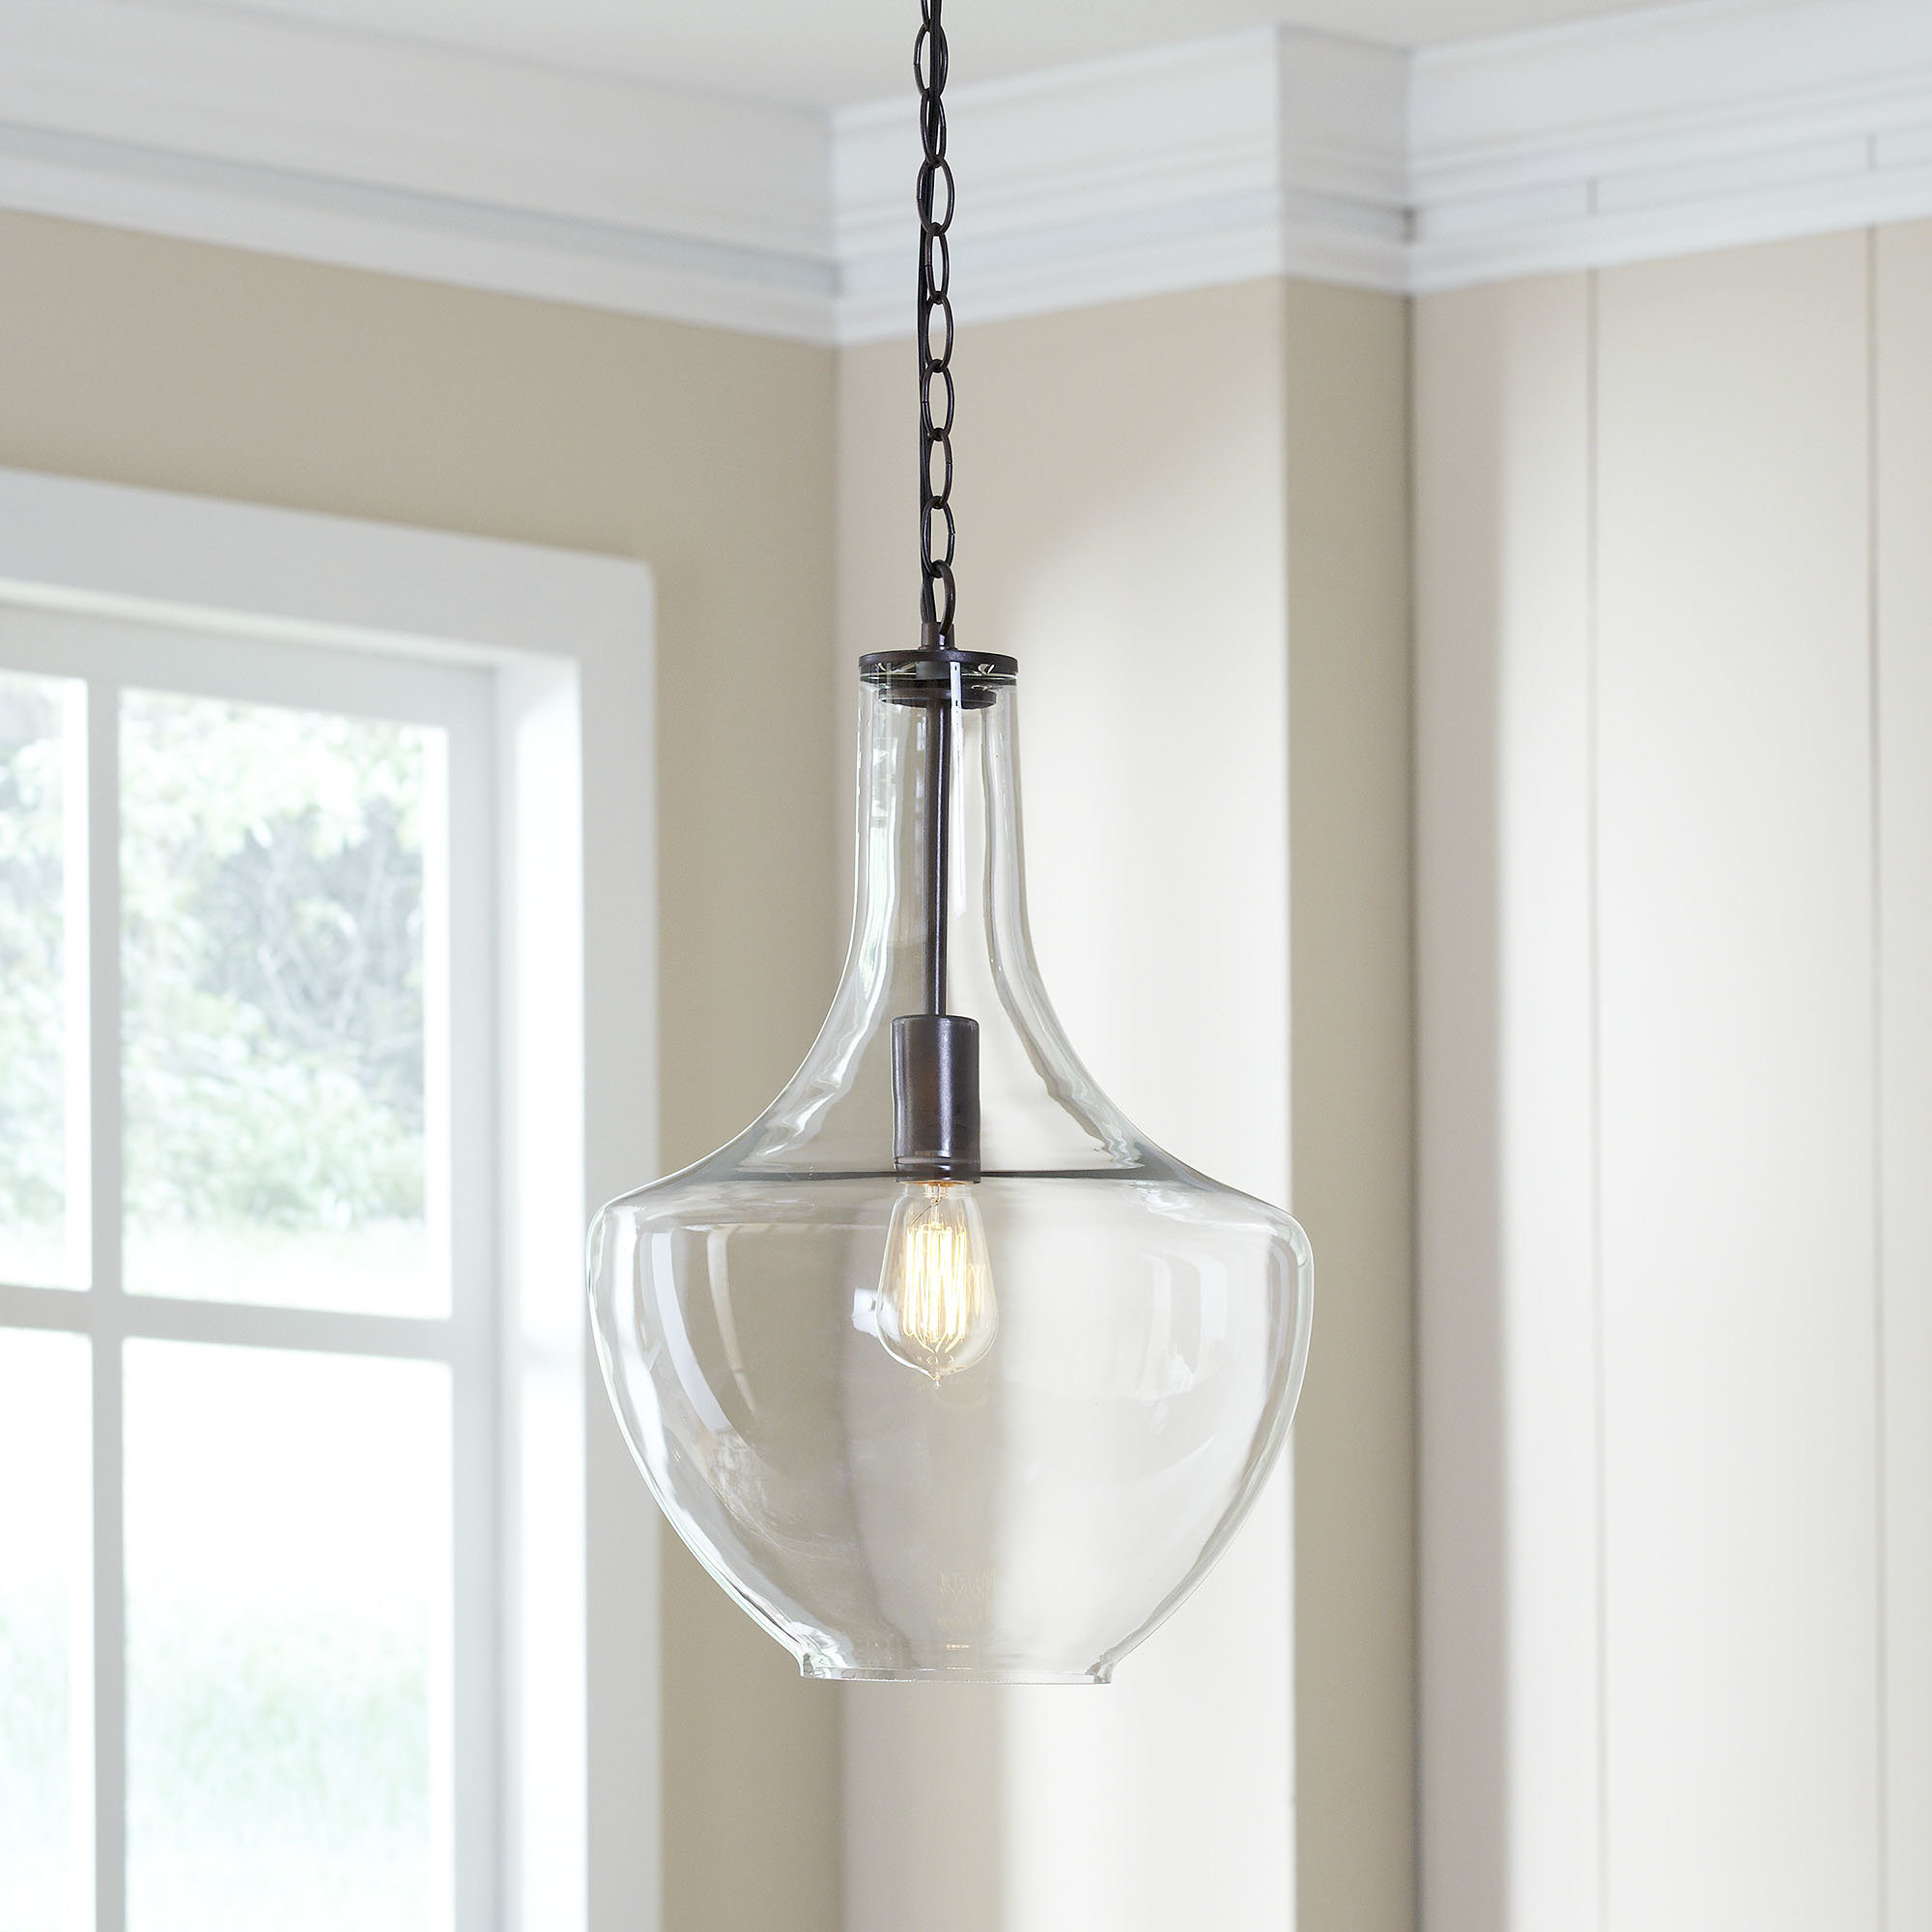 Dunmore 1-Light Single Teardrop Pendant & Reviews | Joss & Main with 1-Light Single Teardrop Pendants (Image 15 of 30)